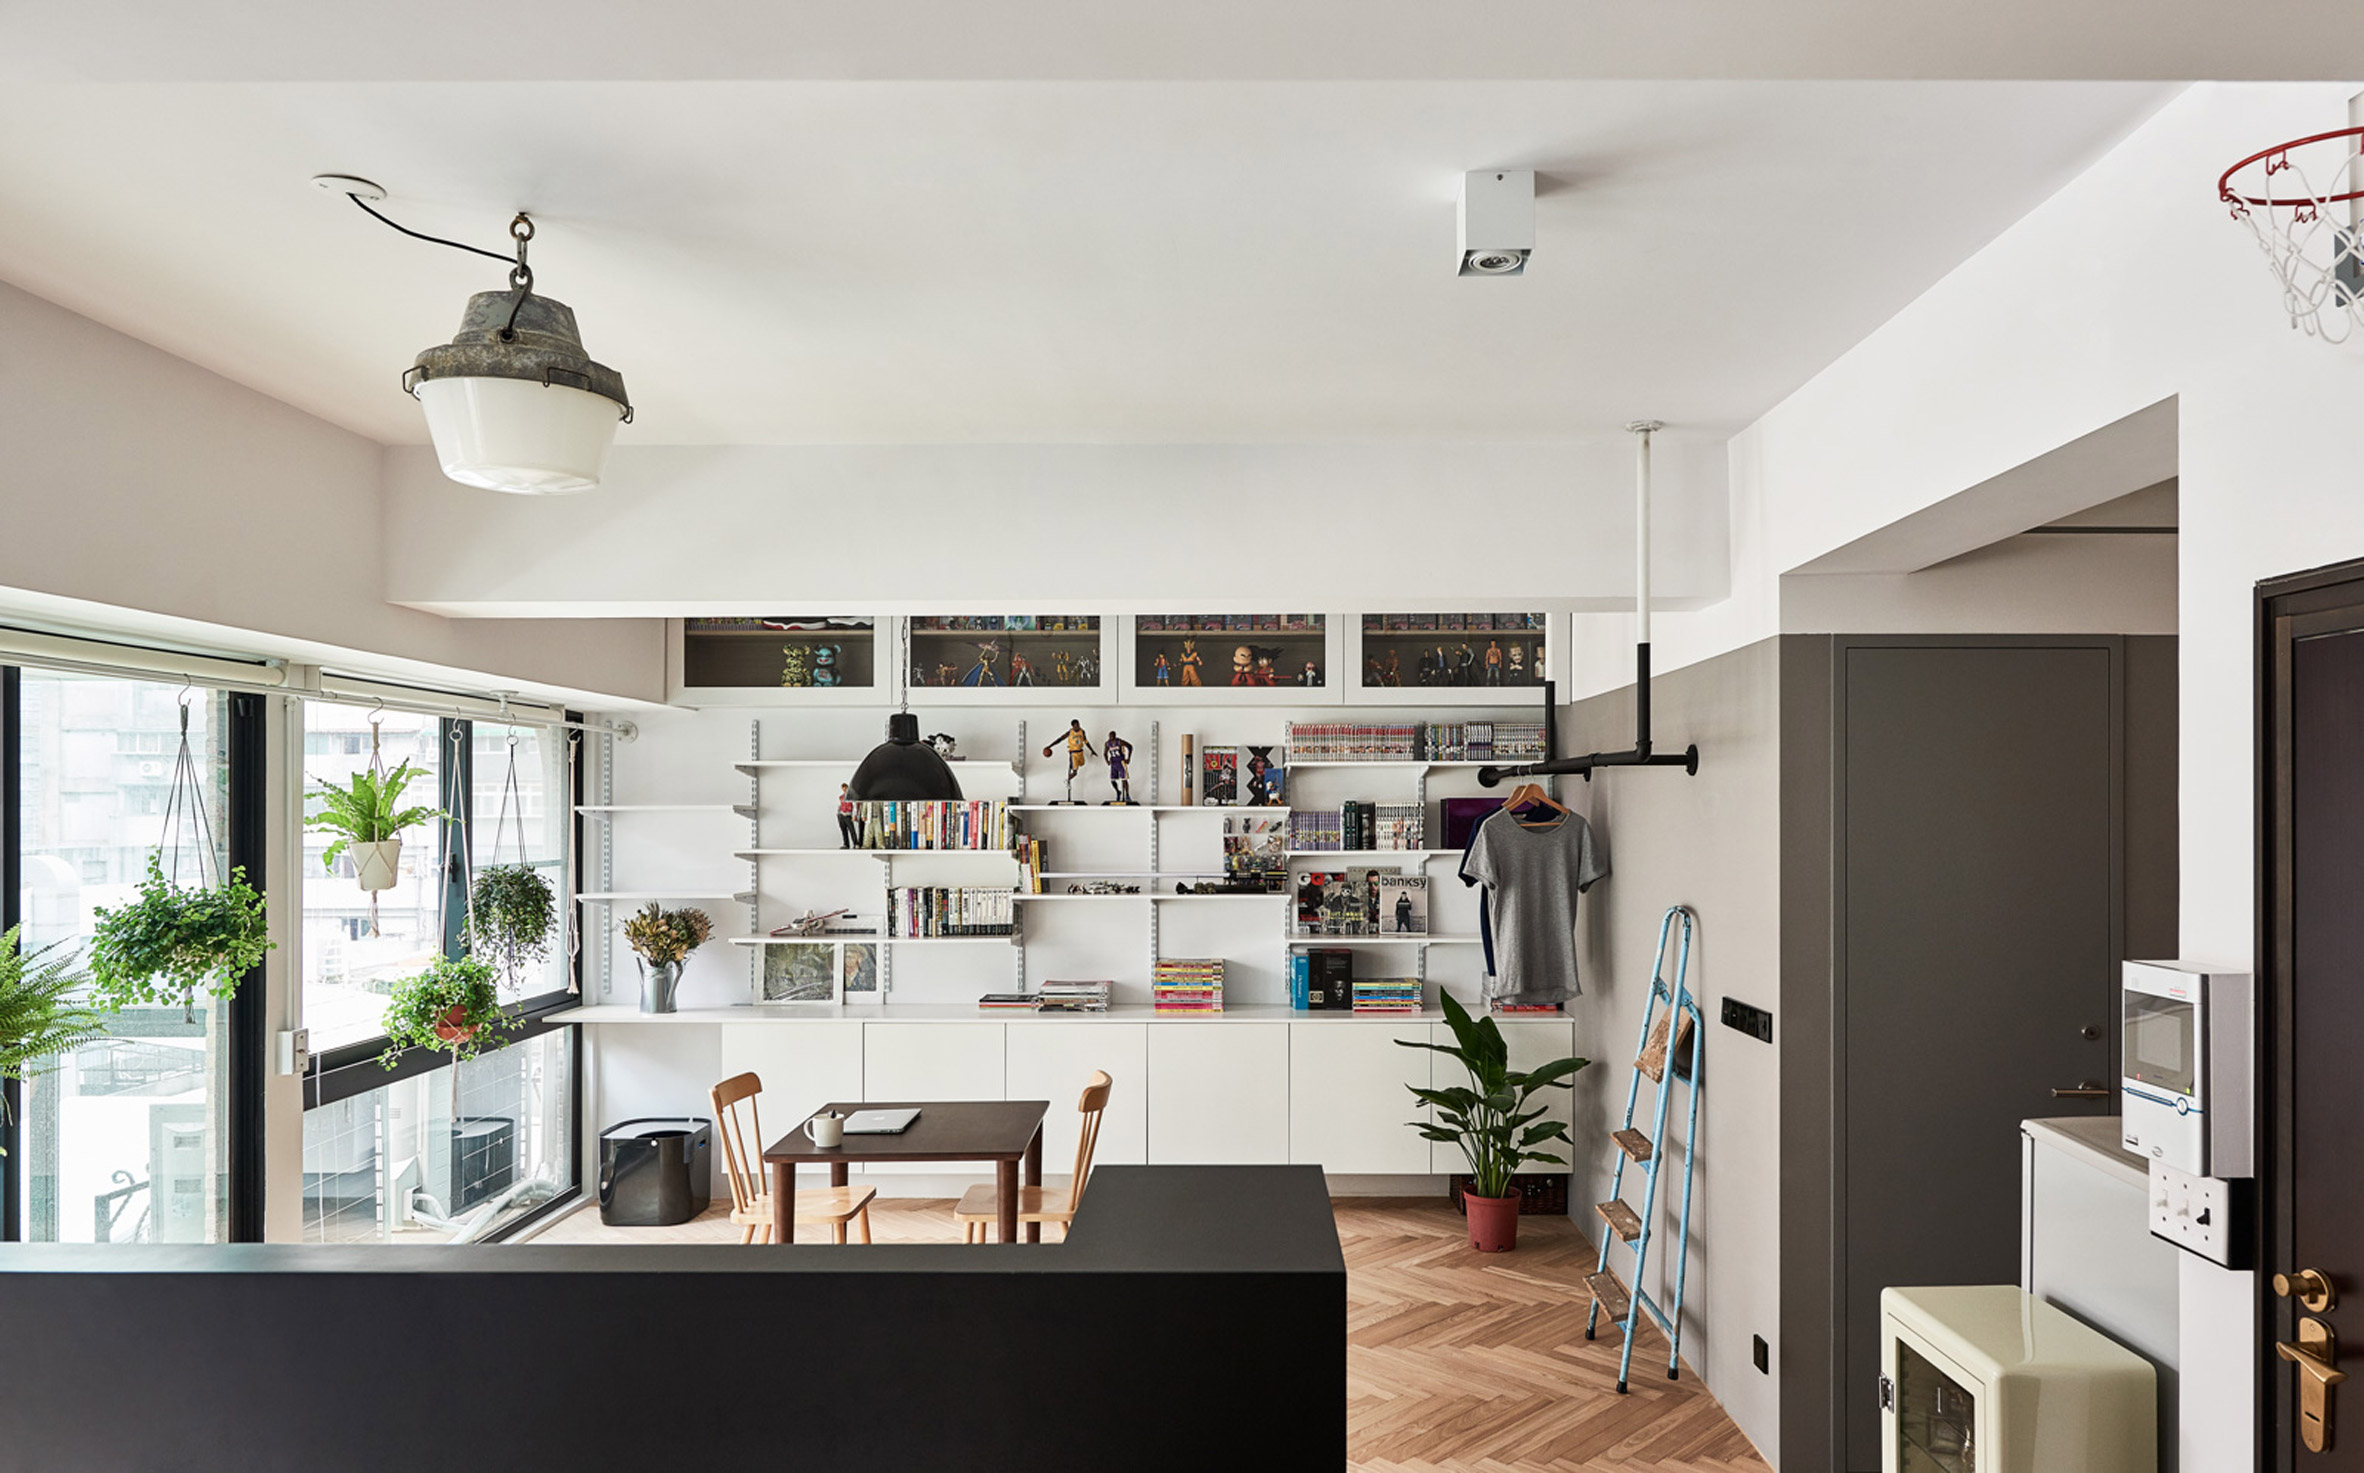 Taipei apartment renovation gives owner and his cats room to play